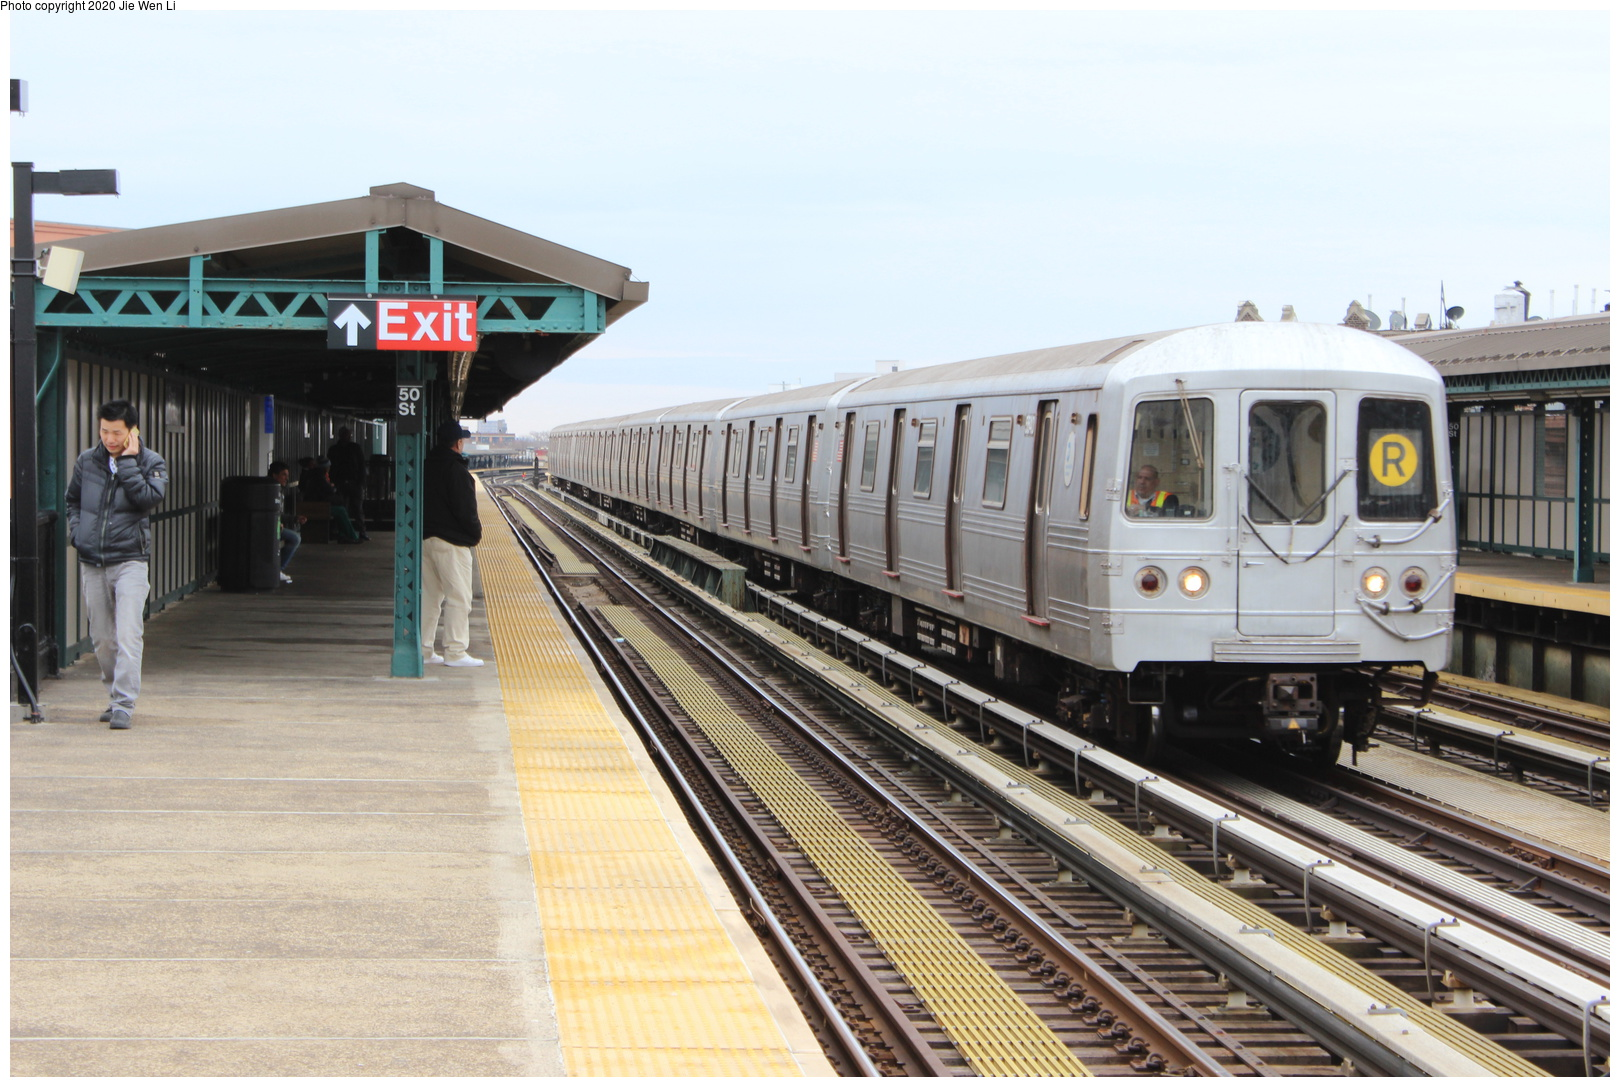 (188k, 1044x694)<br><b>Country:</b> United States<br><b>City:</b> New York<br><b>System:</b> New York City Transit<br><b>Line:</b> IRT Flushing Line<br><b>Location:</b> 46th Street/Bliss Street <br><b>Car:</b> Low-V Worlds Fair  <br><b>Photo by:</b> Joel Shanus<br><b>Viewed (this week/total):</b> 0 / 2223